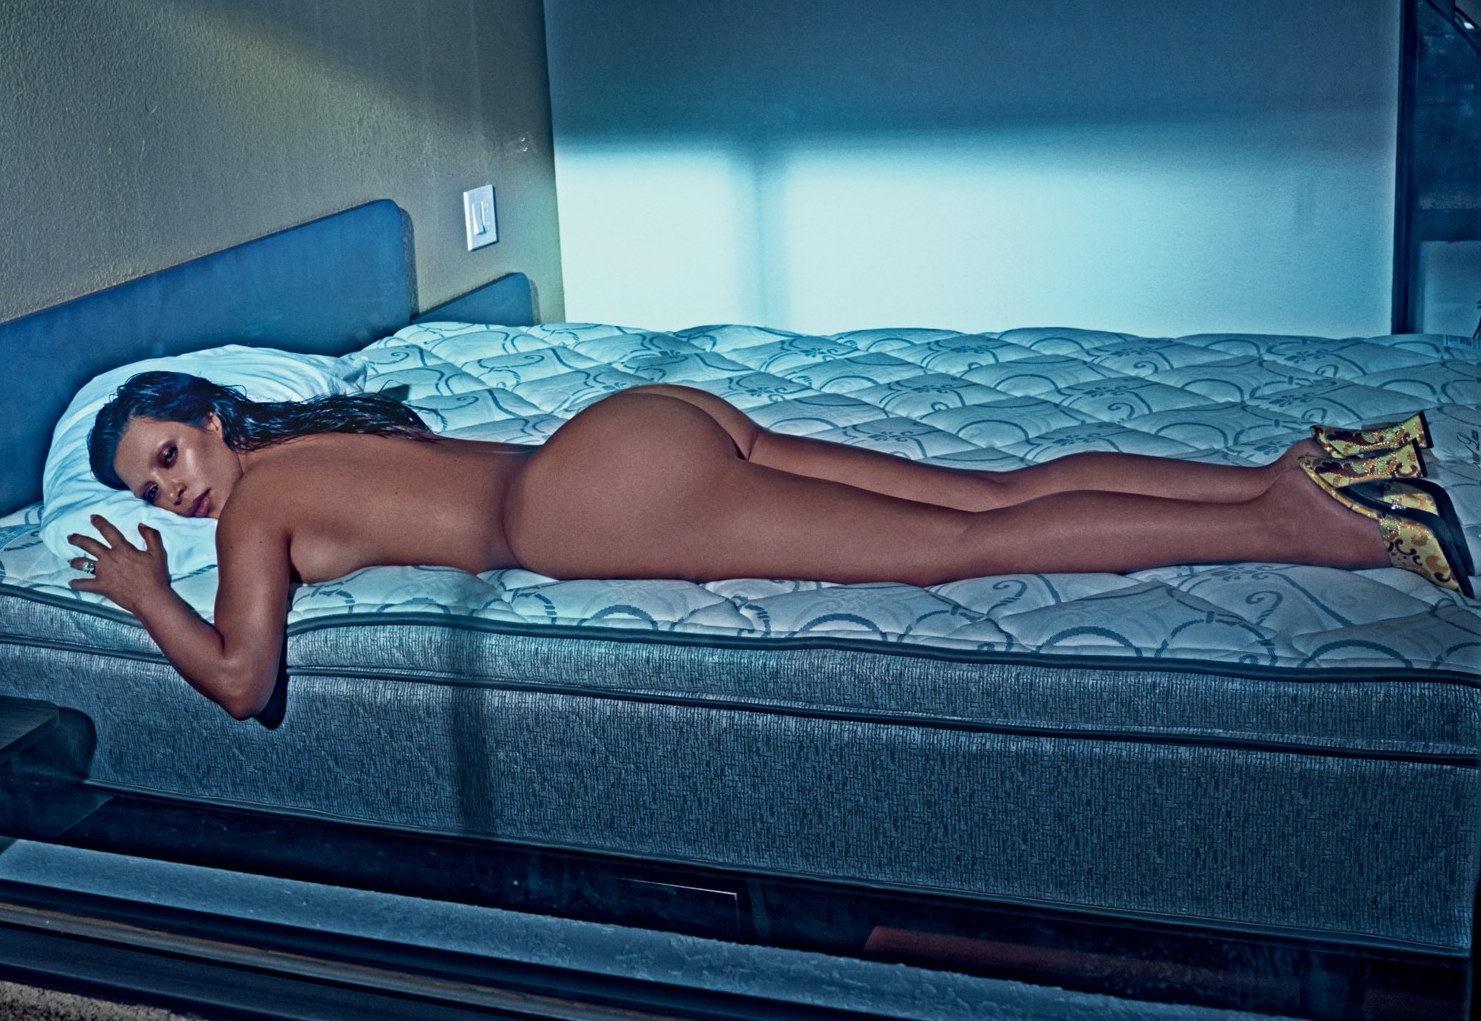 Pics of kim kardashian nude — photo 4